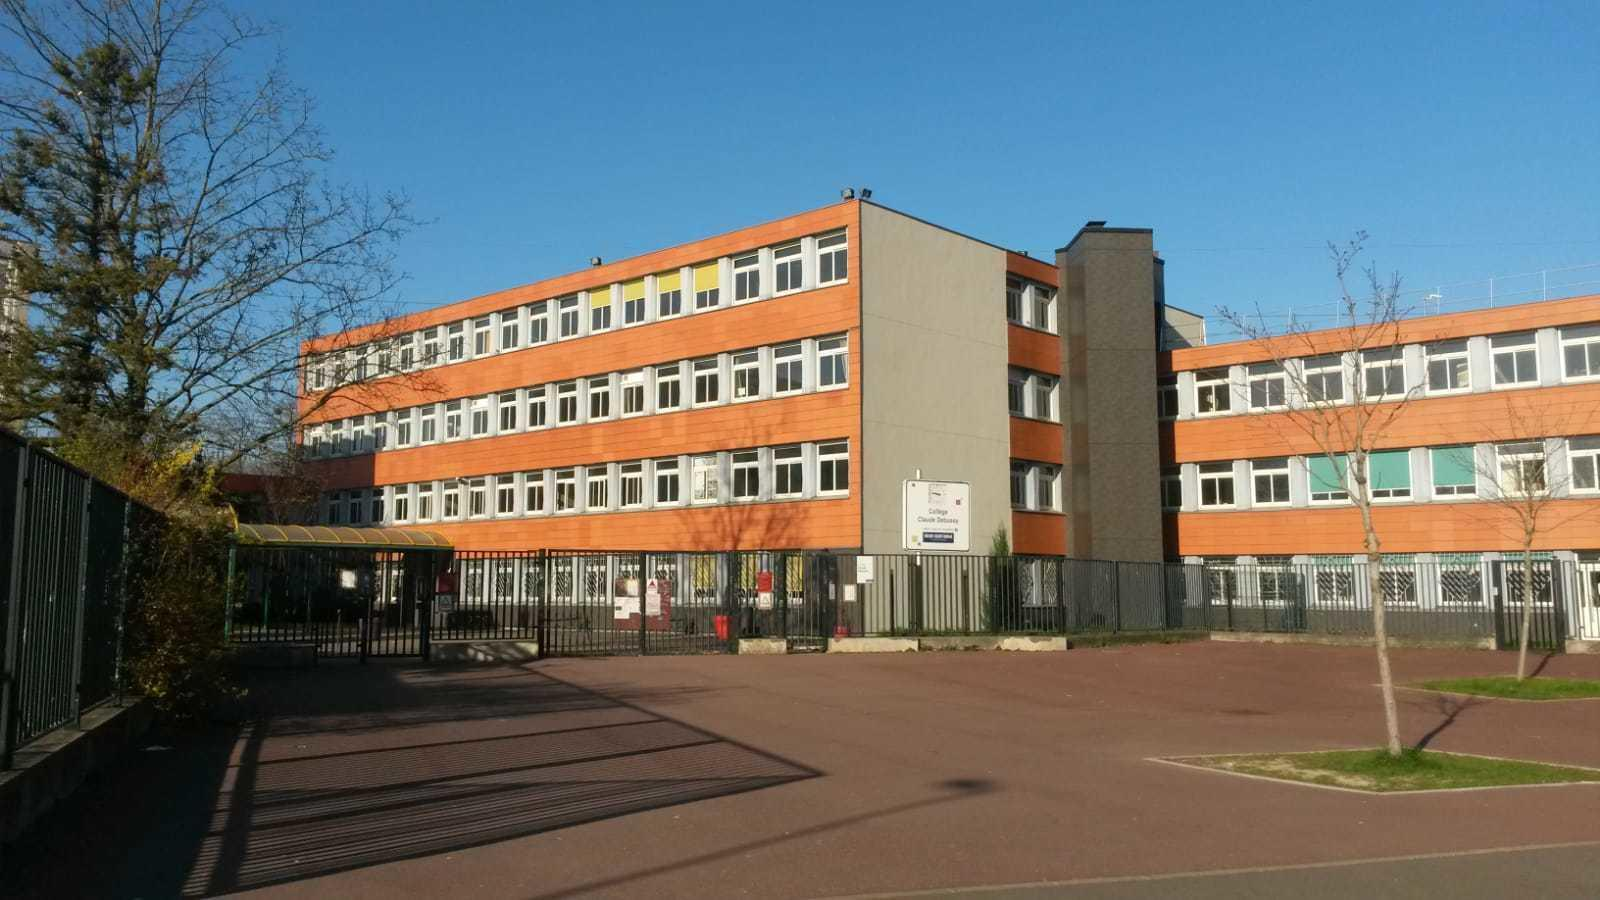 The Collège Claude Debussy, a middle school in Aulnay-sous-Bois, one of several facilities to have reported an alarming spike in infections.